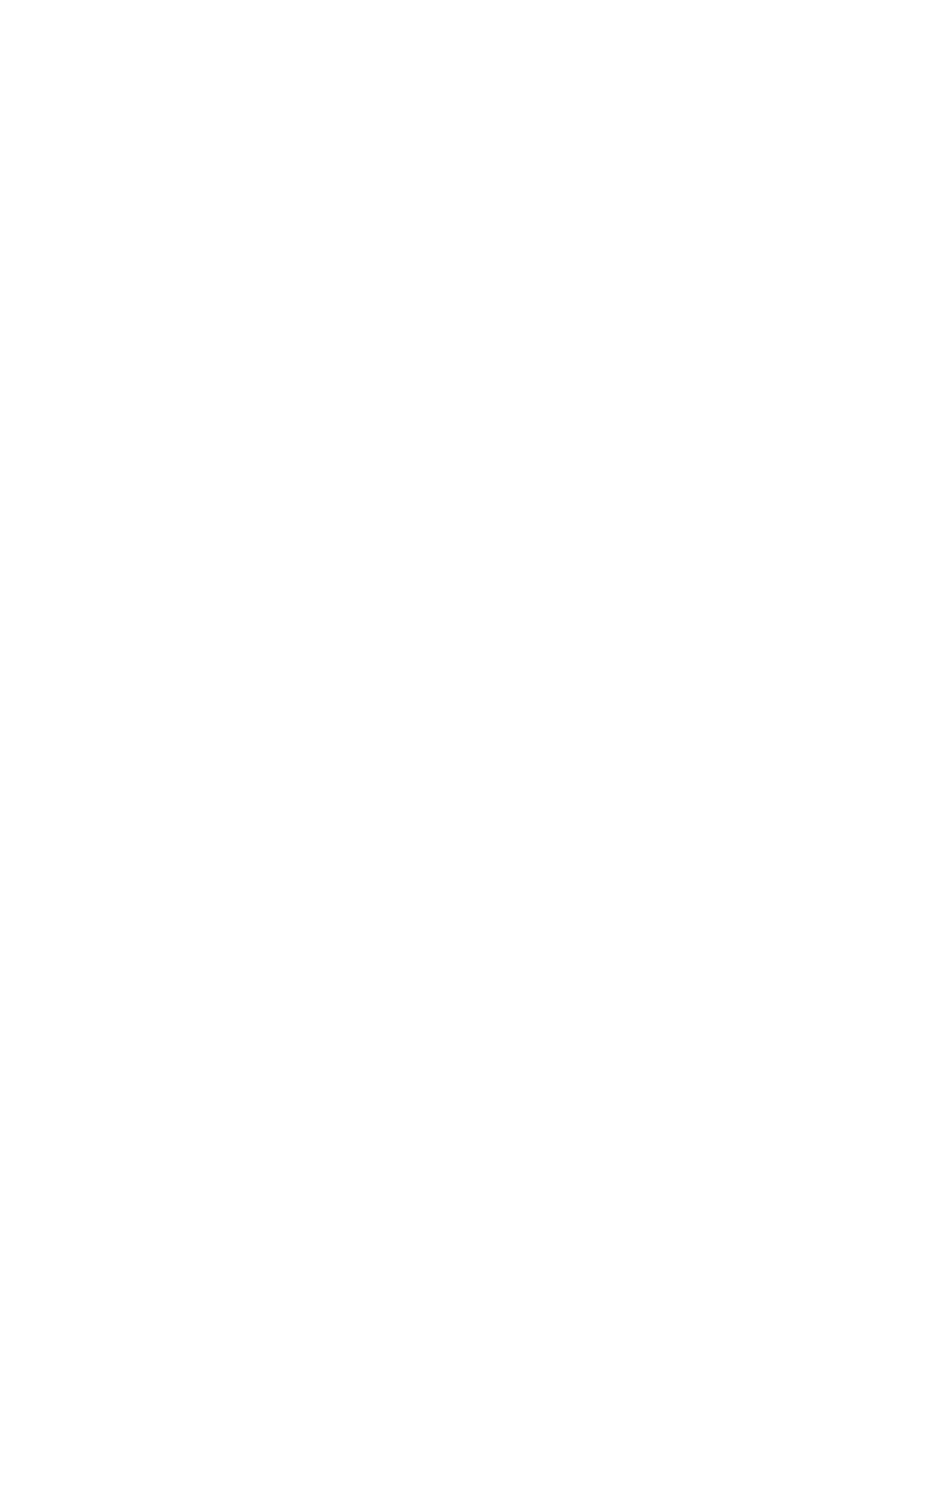 Kozy Paris - Salon Urbain